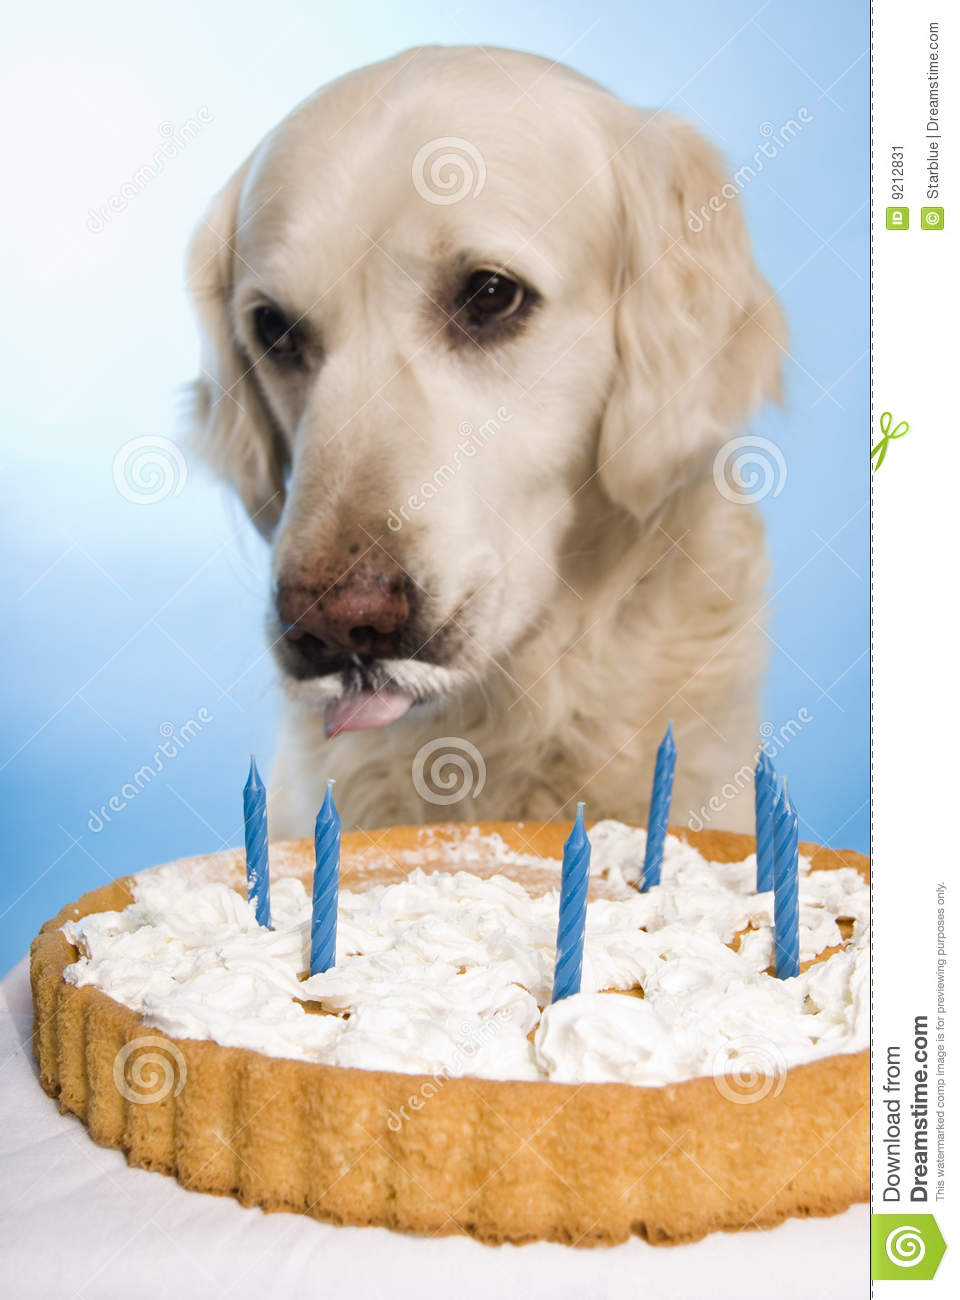 Dog Eating A Cake Stock Image Image Of Celebrating